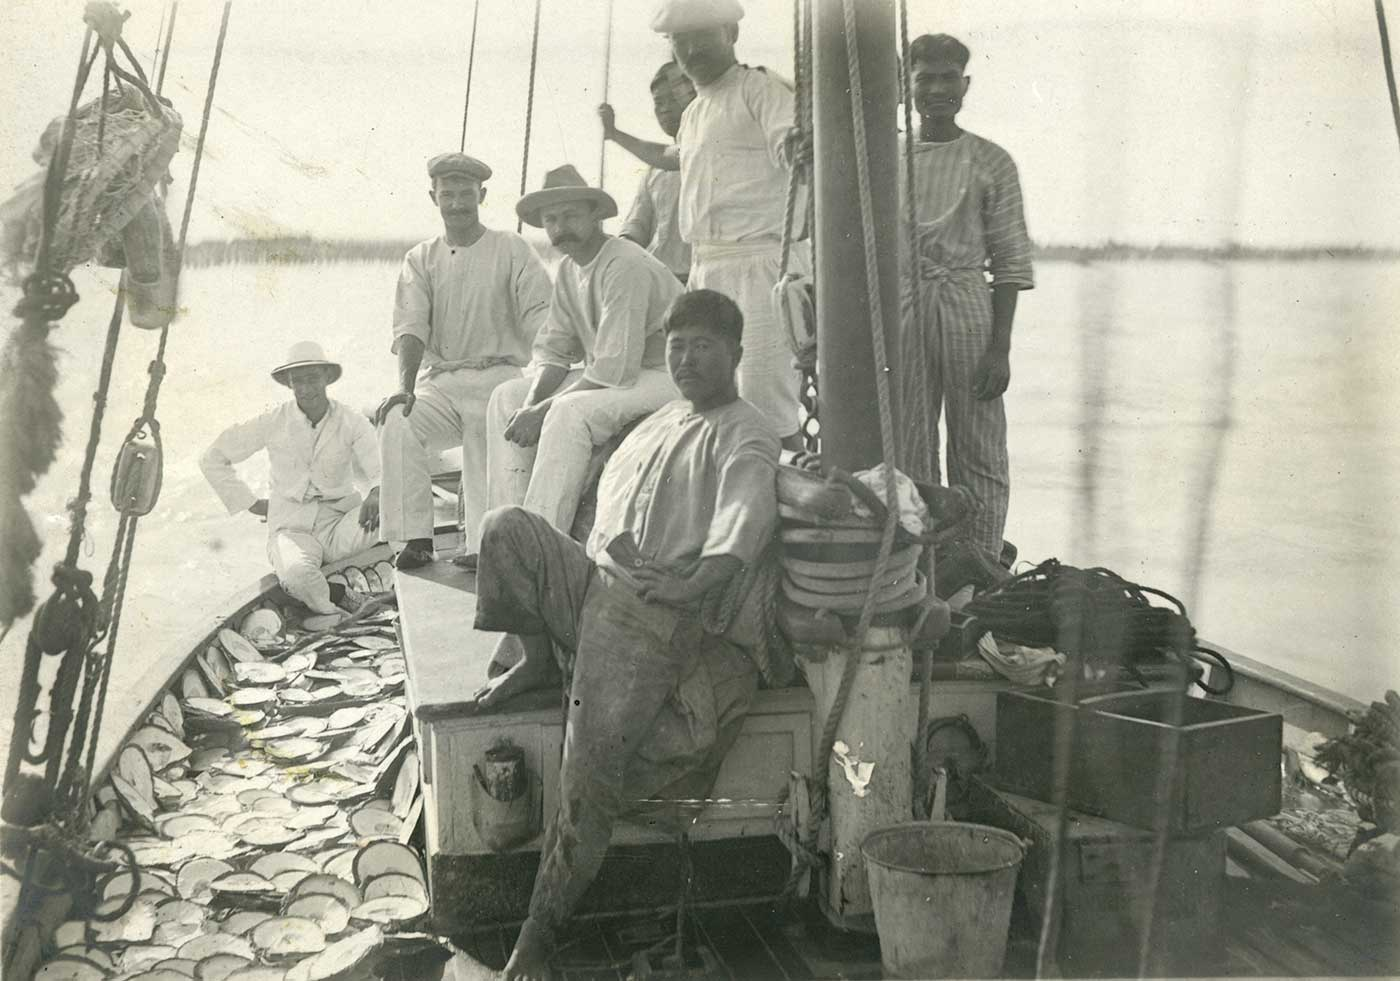 Men aboard a pearling lugger - click to view larger image